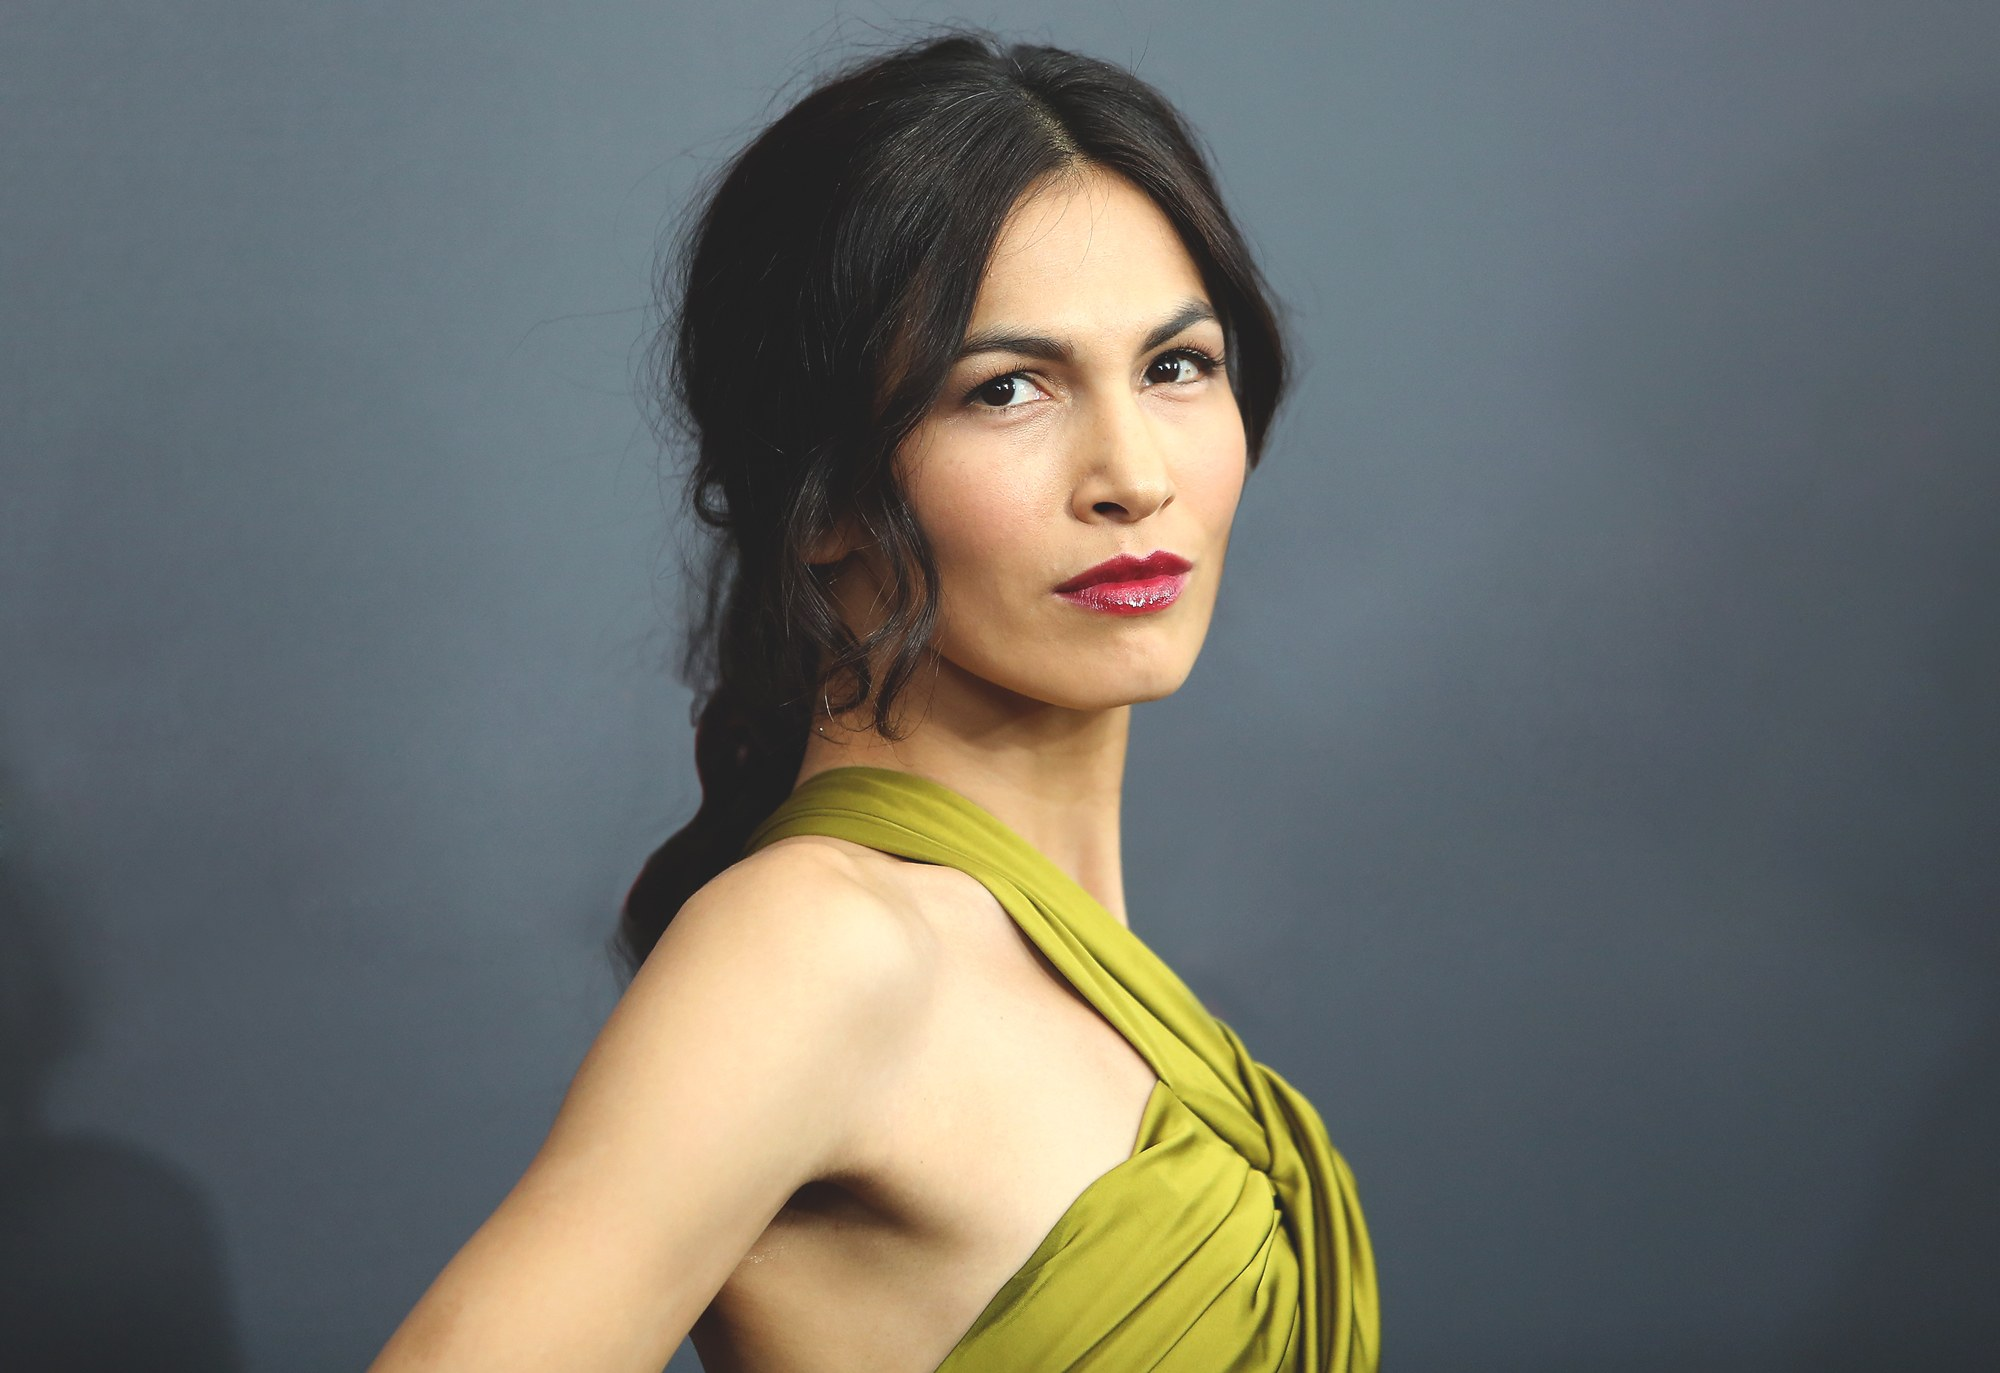 2000x1373 - Elodie Yung Wallpapers 23